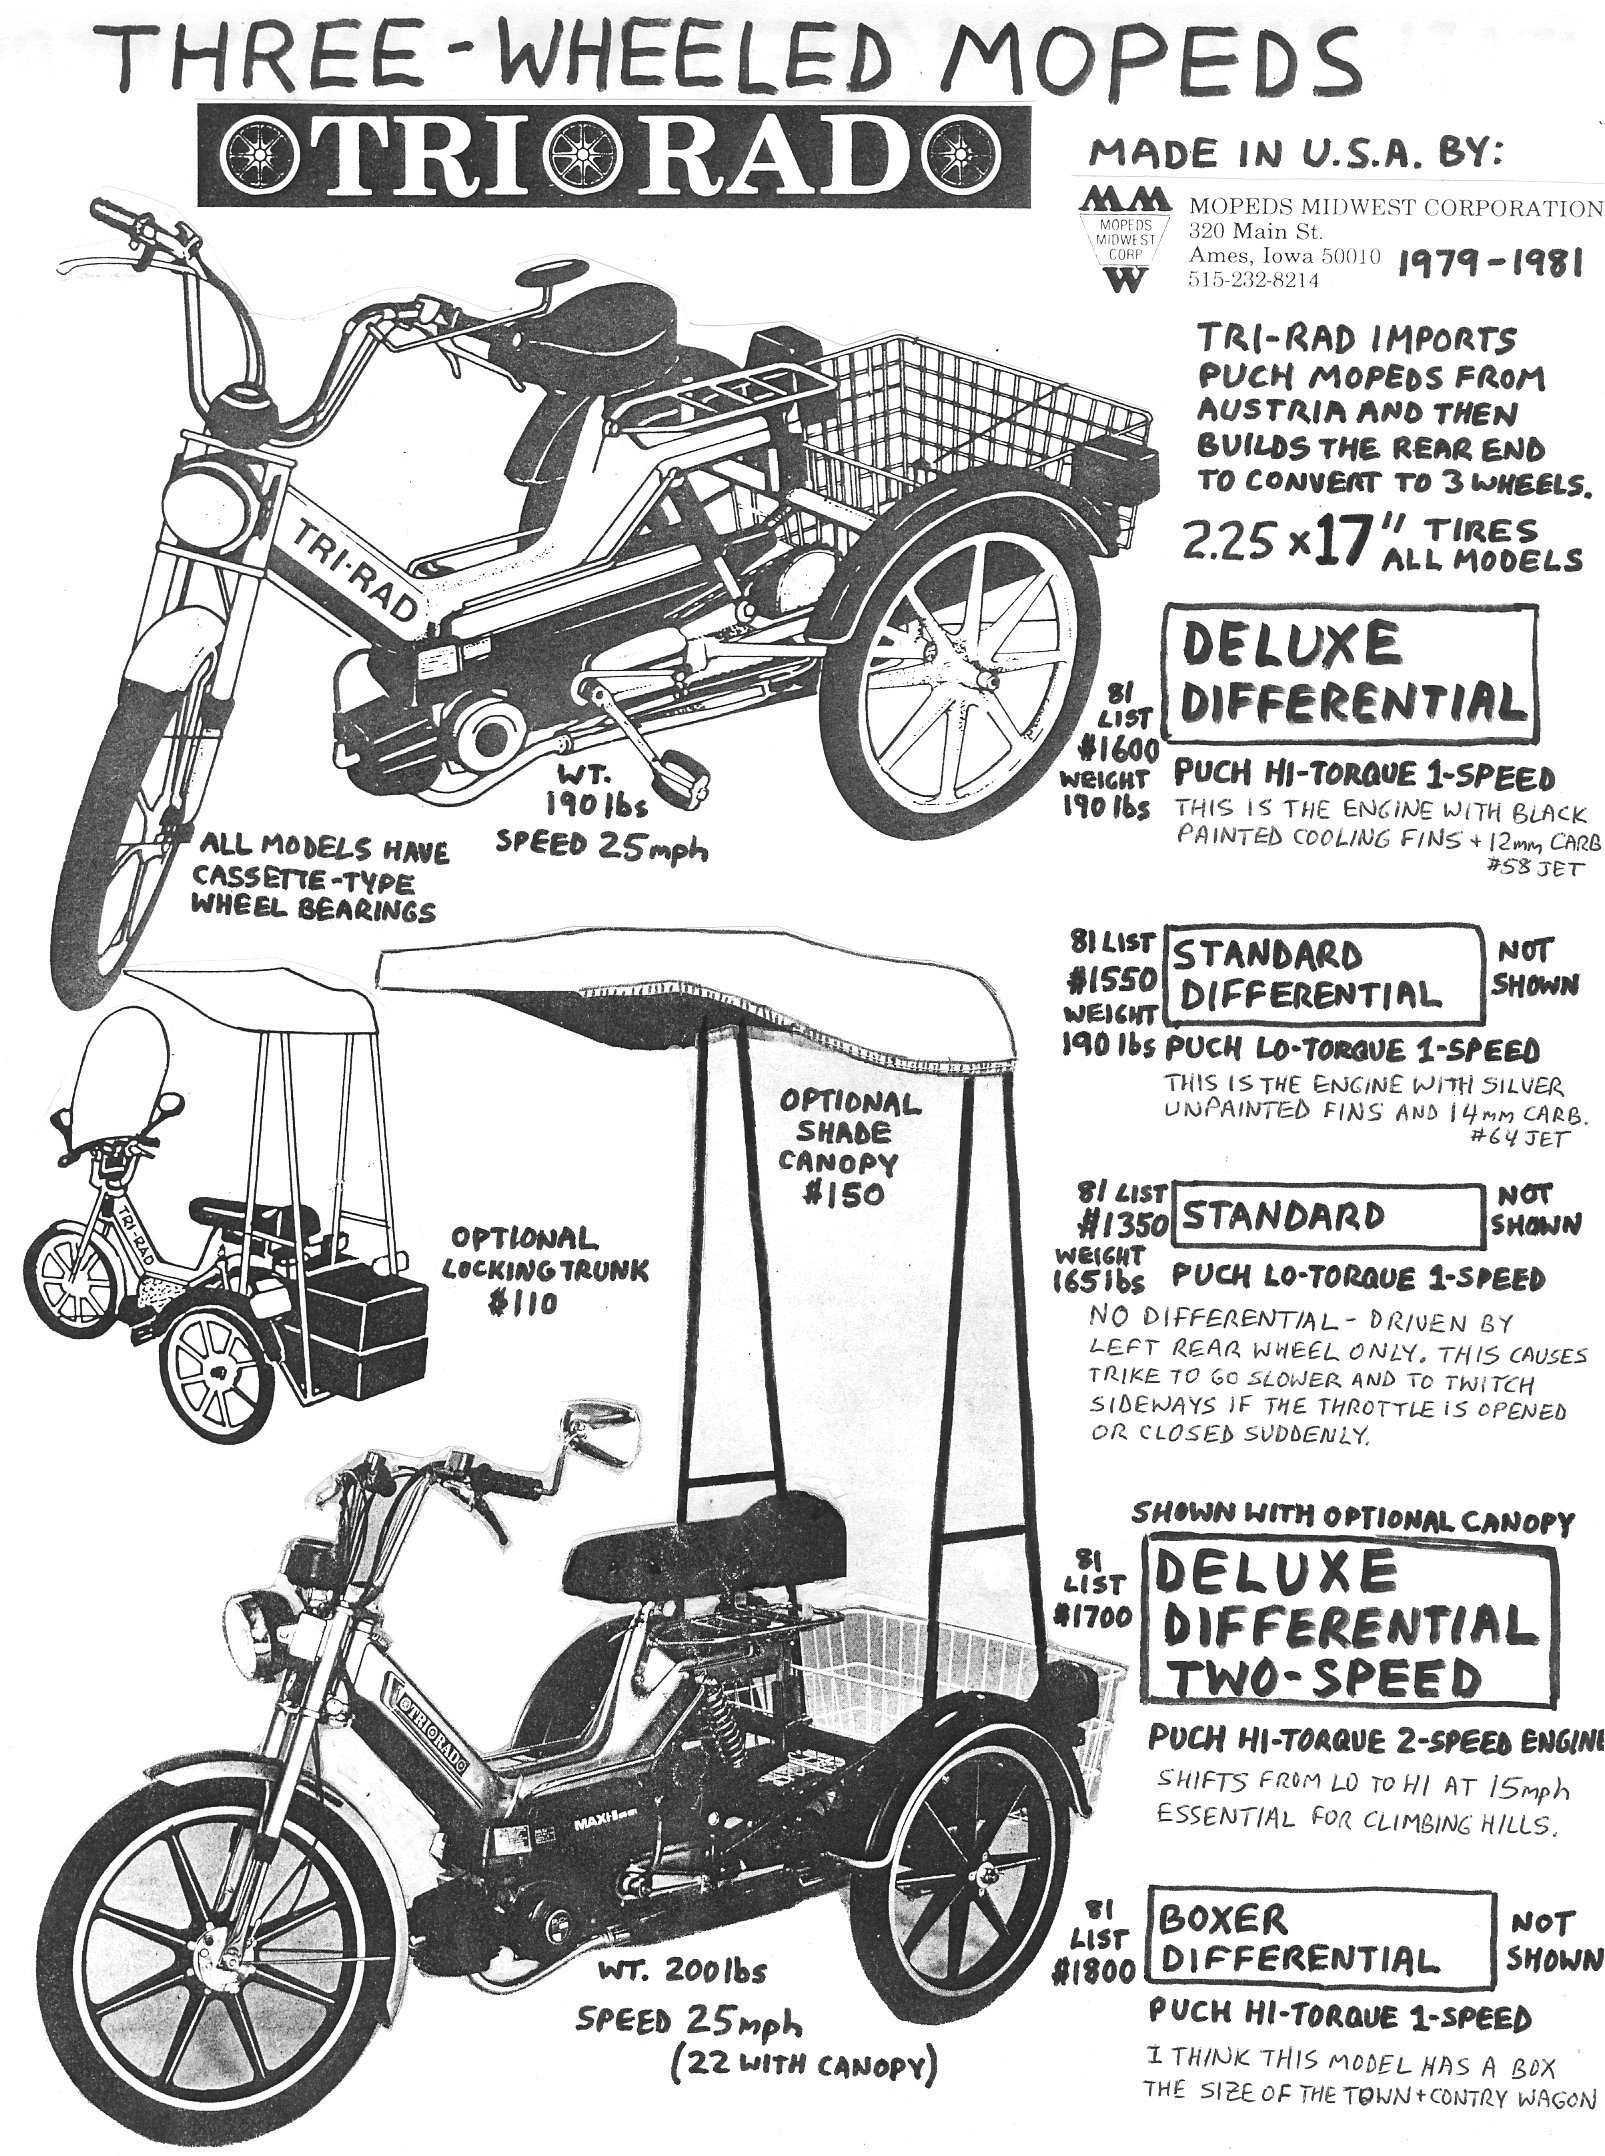 1954 Allstate Scooter Wiring Diagram 1954 Cushman Scooter